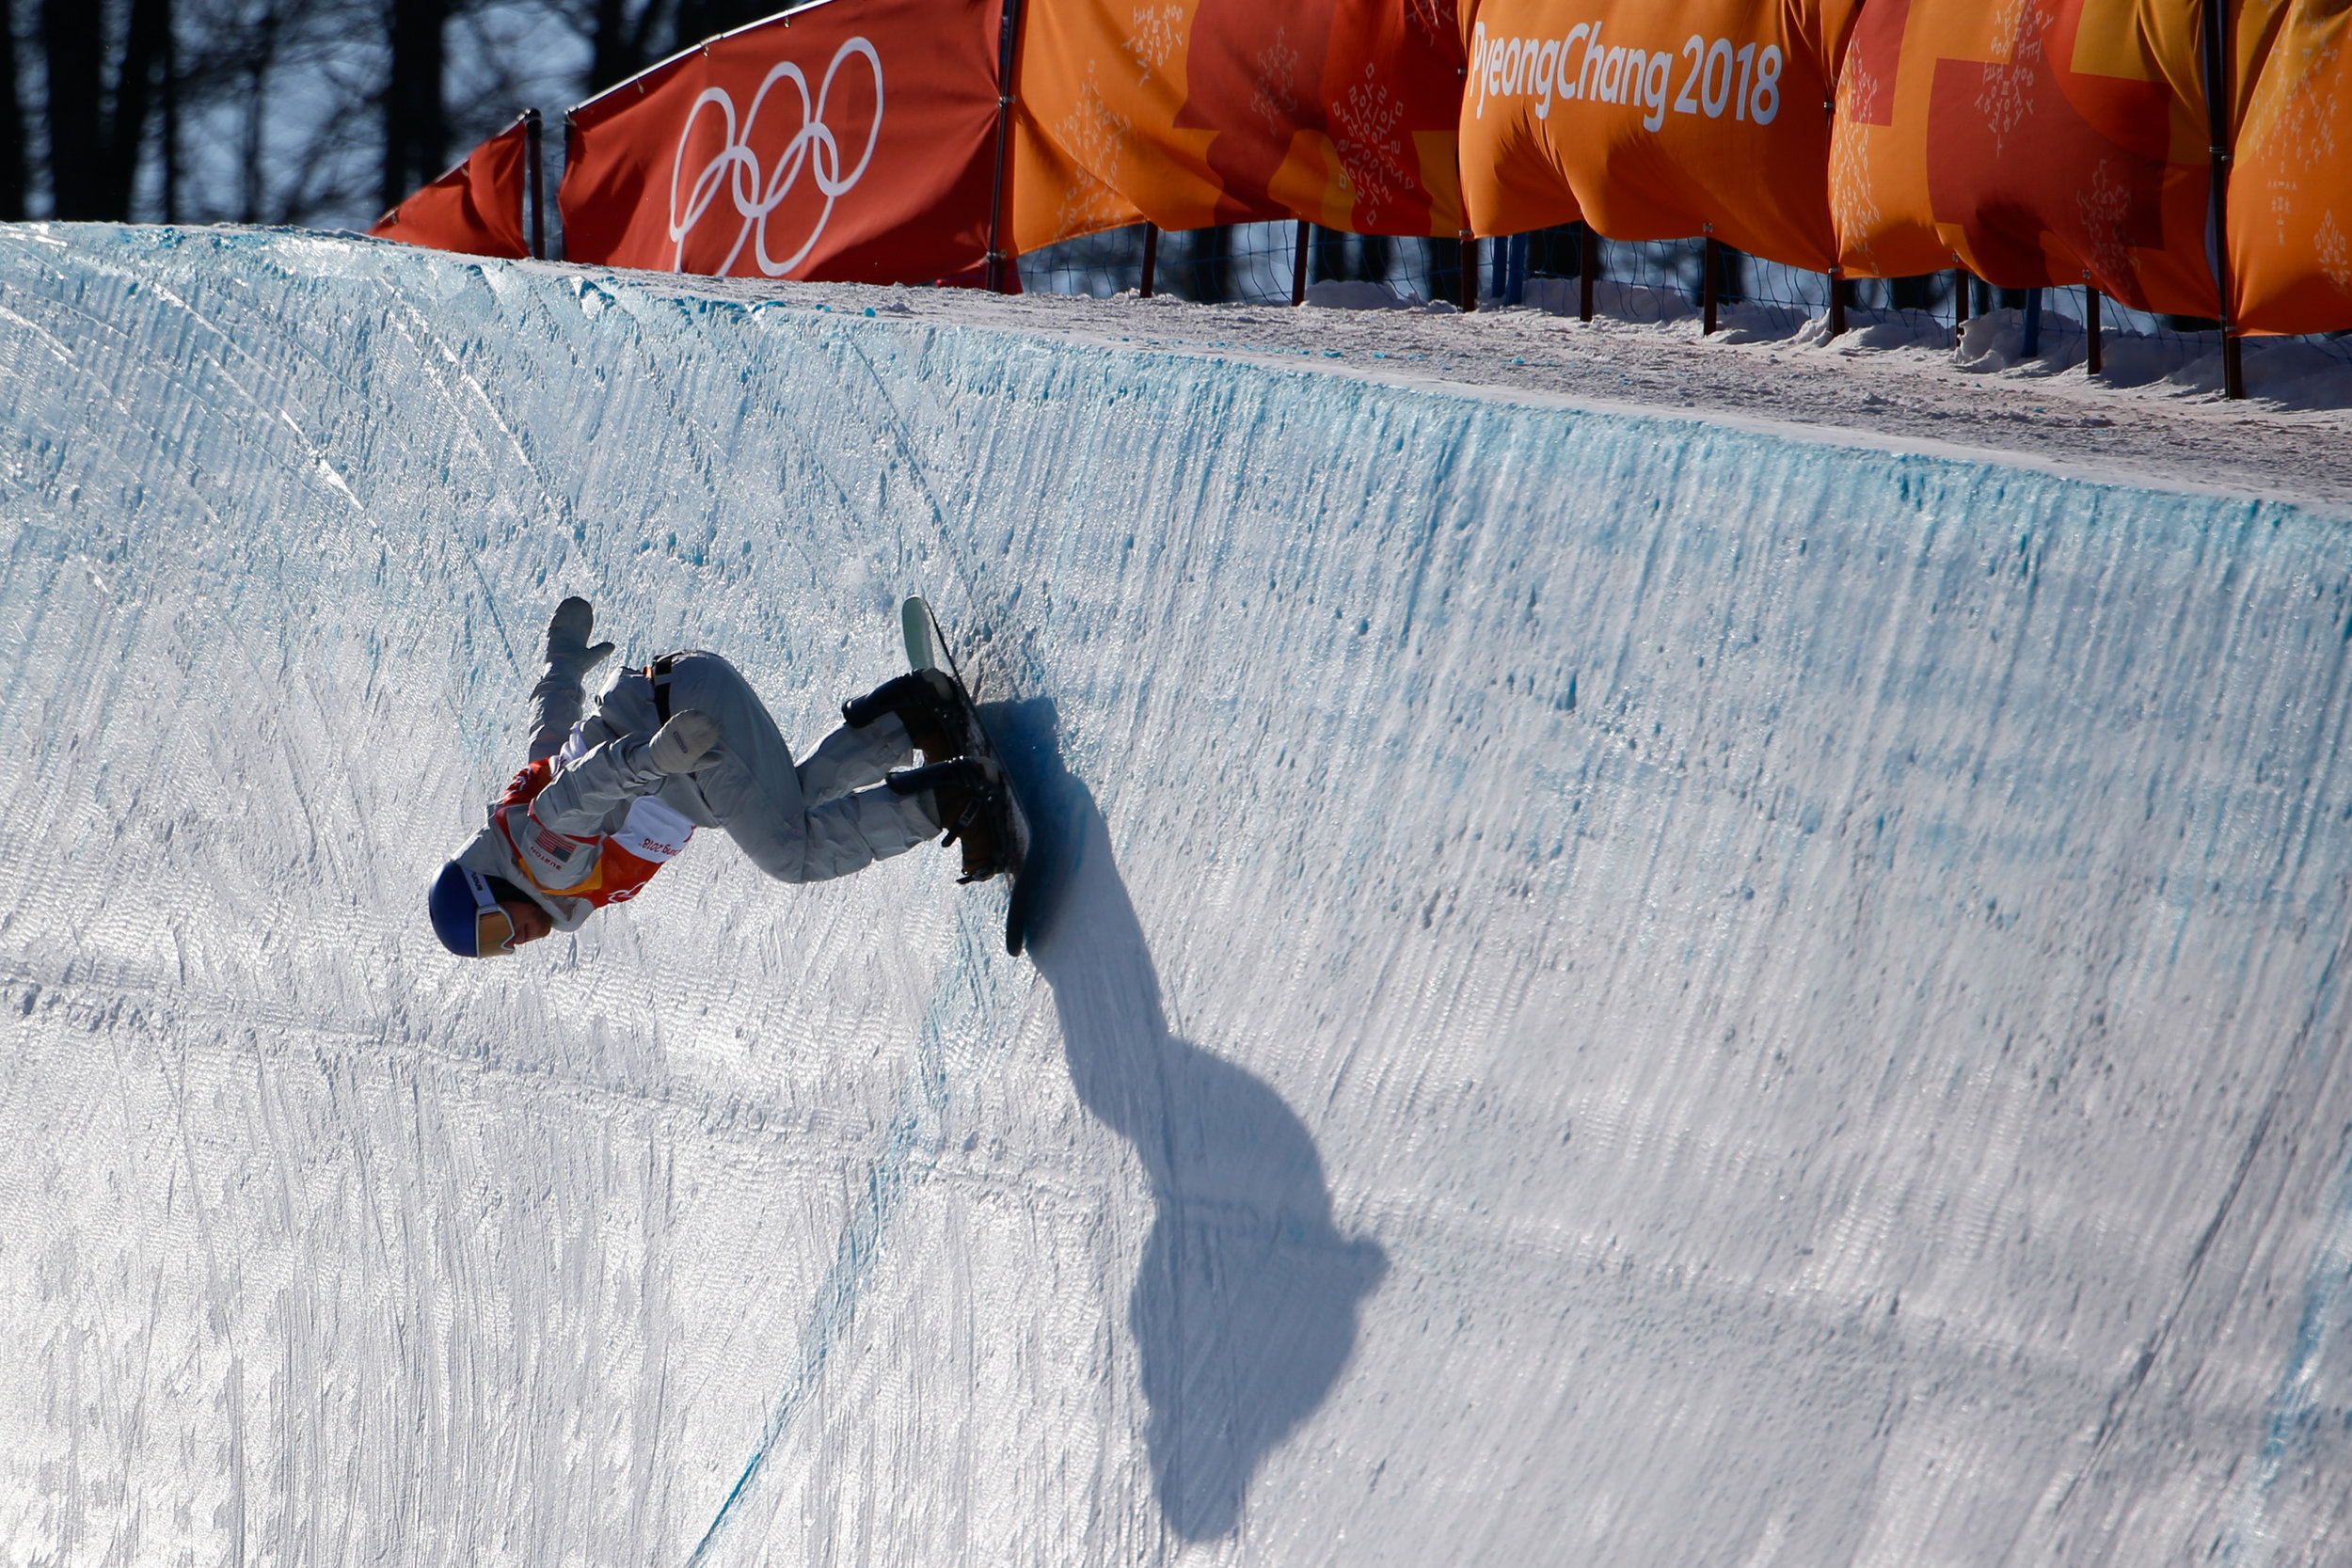 Ben Ferguson of the United States competes in the Men's Halfpipe qualification at the 2018 Pyeongchang Winter Olympics at Phoenix Snow Park in Pyeongchang, South Korea, on February 13, 2018. Photo by Matthew Healey/UPI